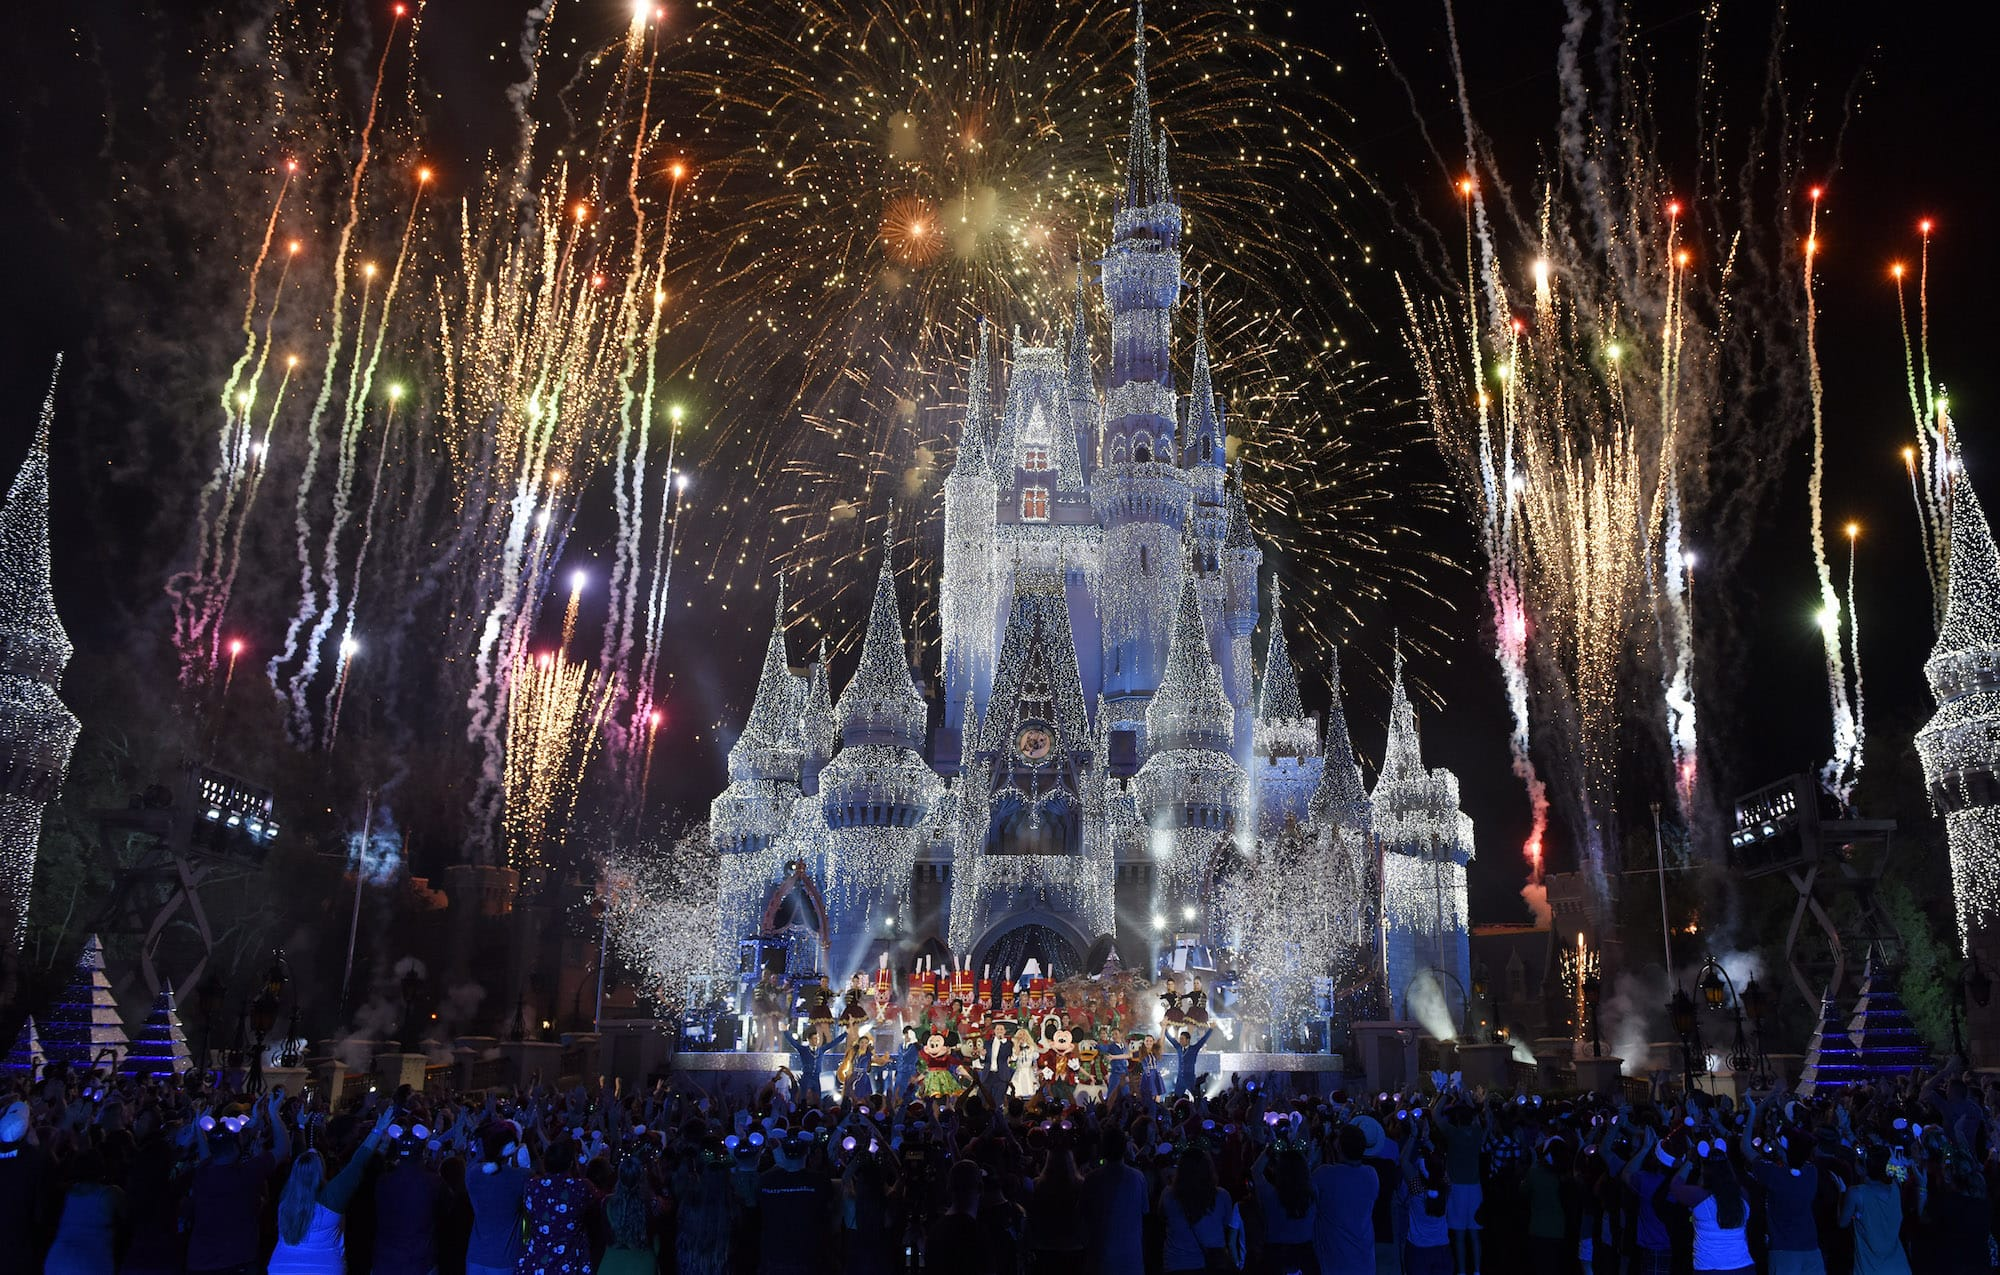 Annual Disney holiday specials to film at Walt Disney World next month